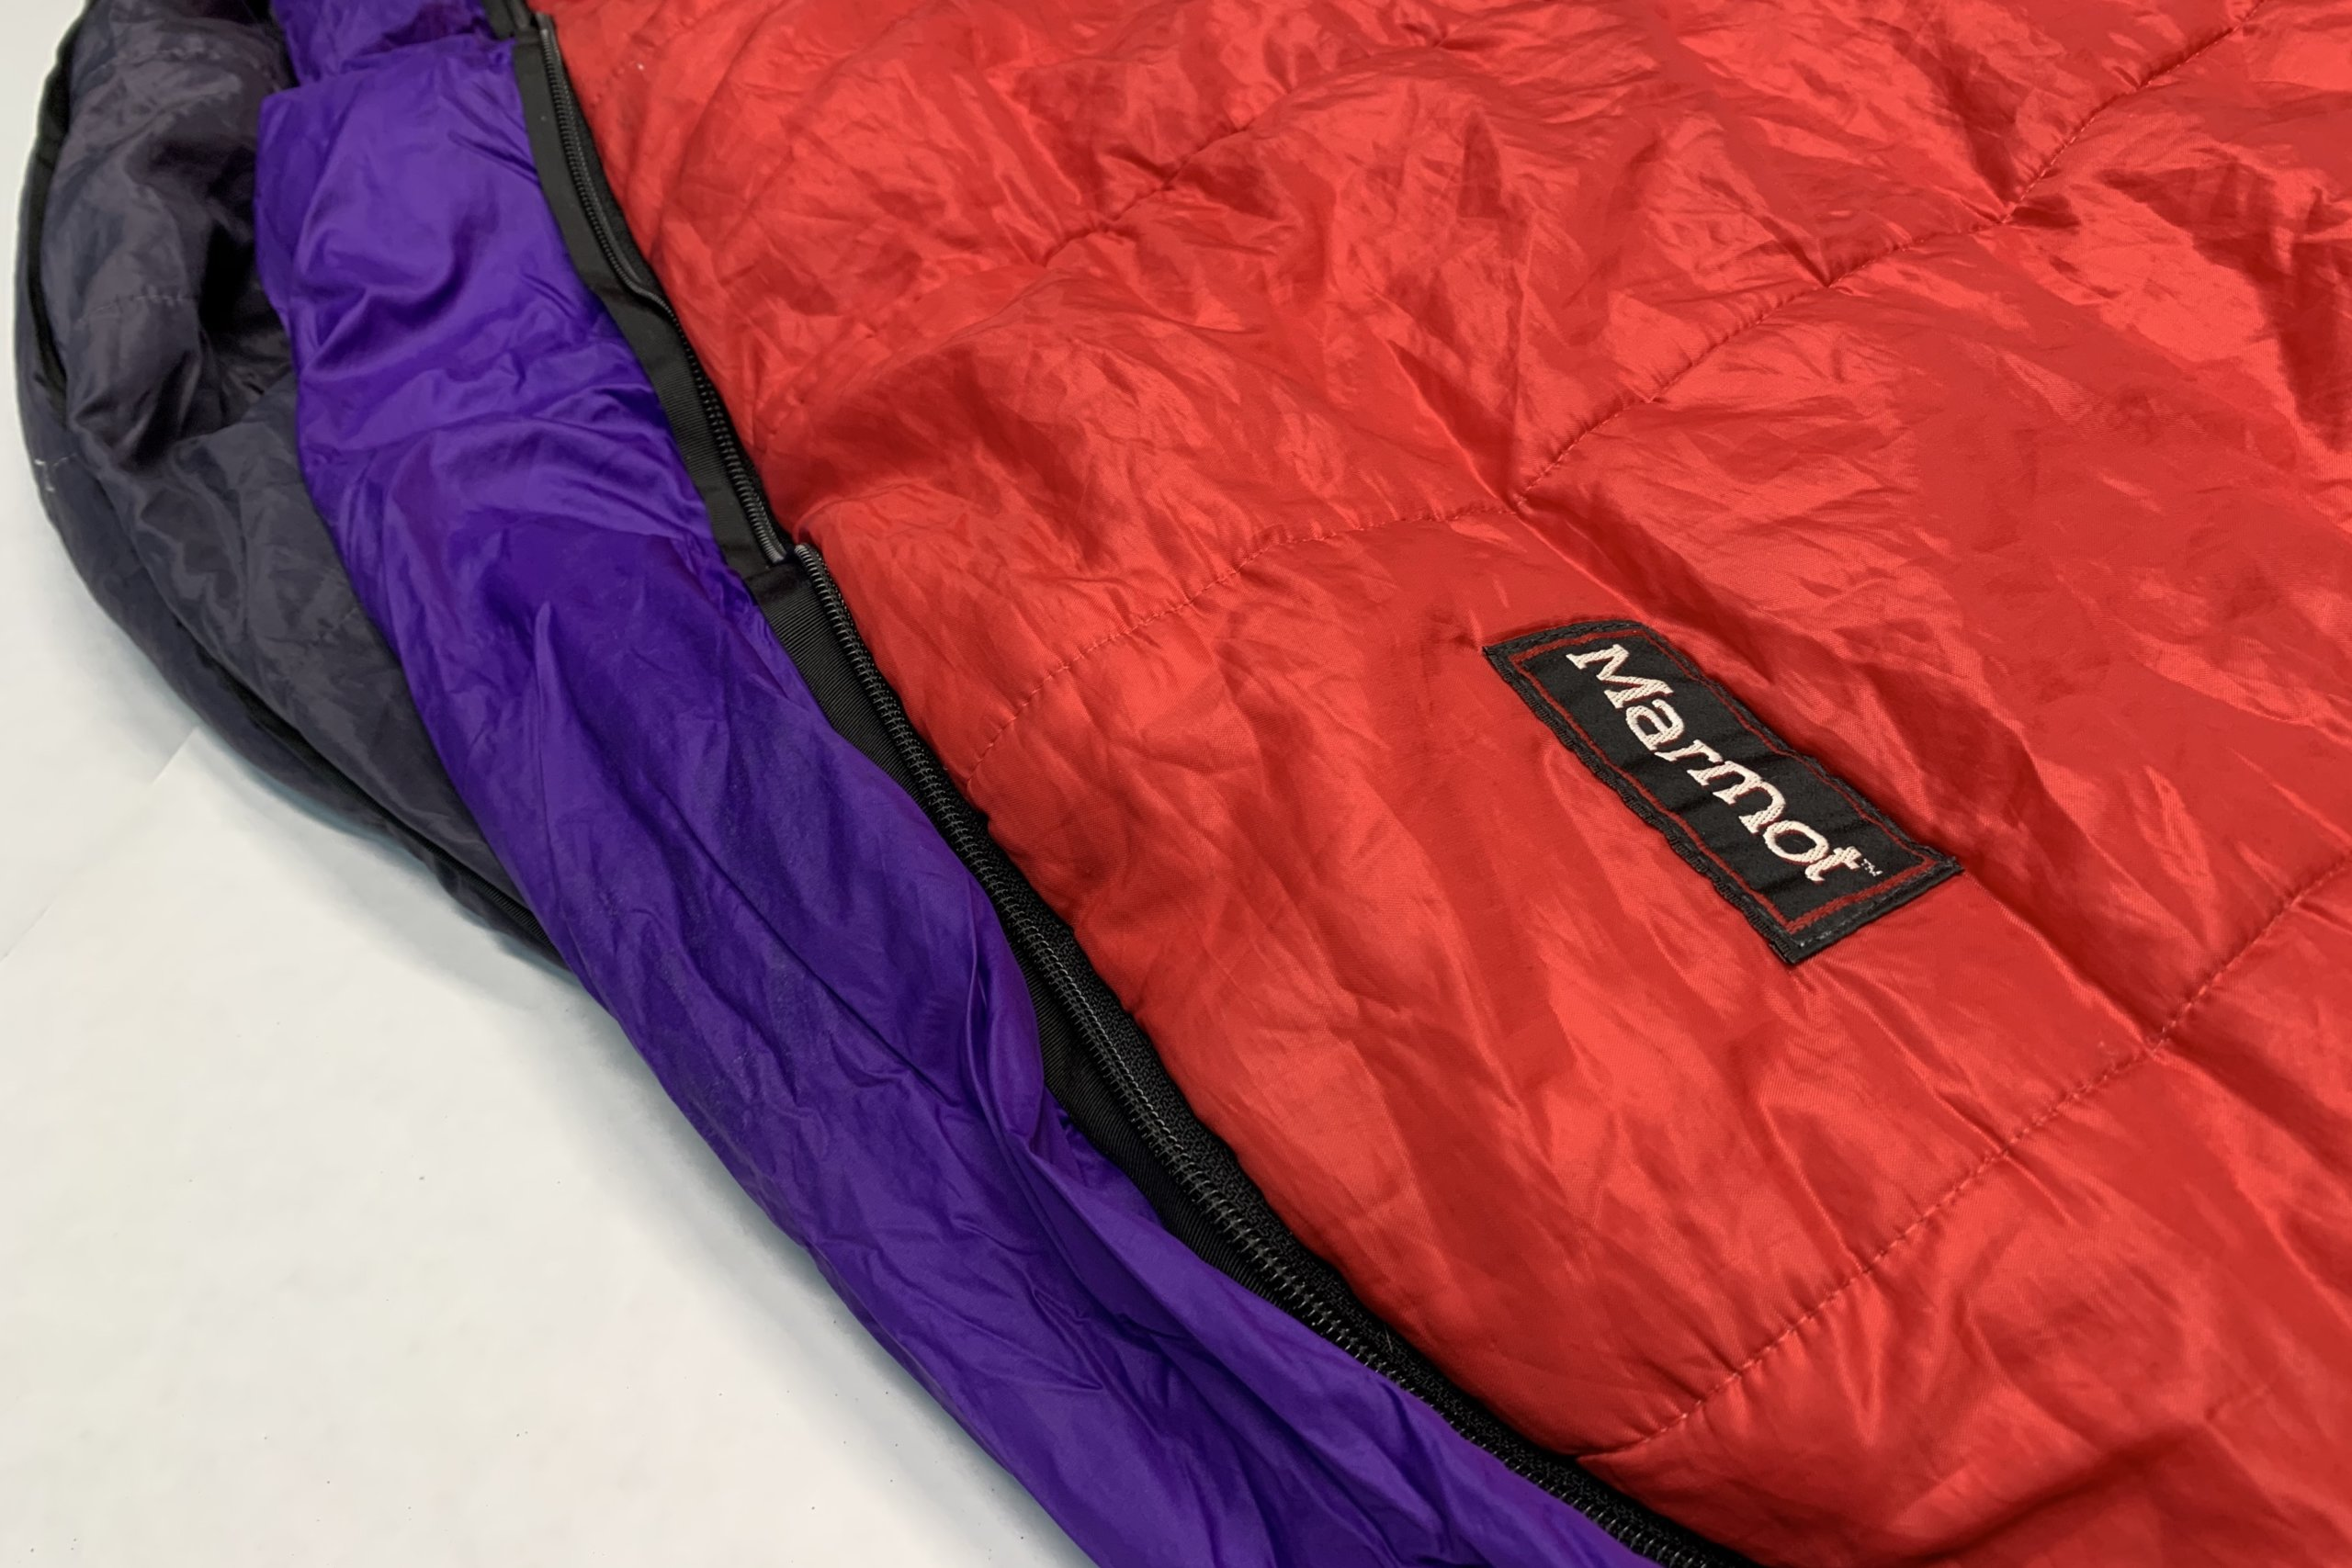 Marmot sleeping bag